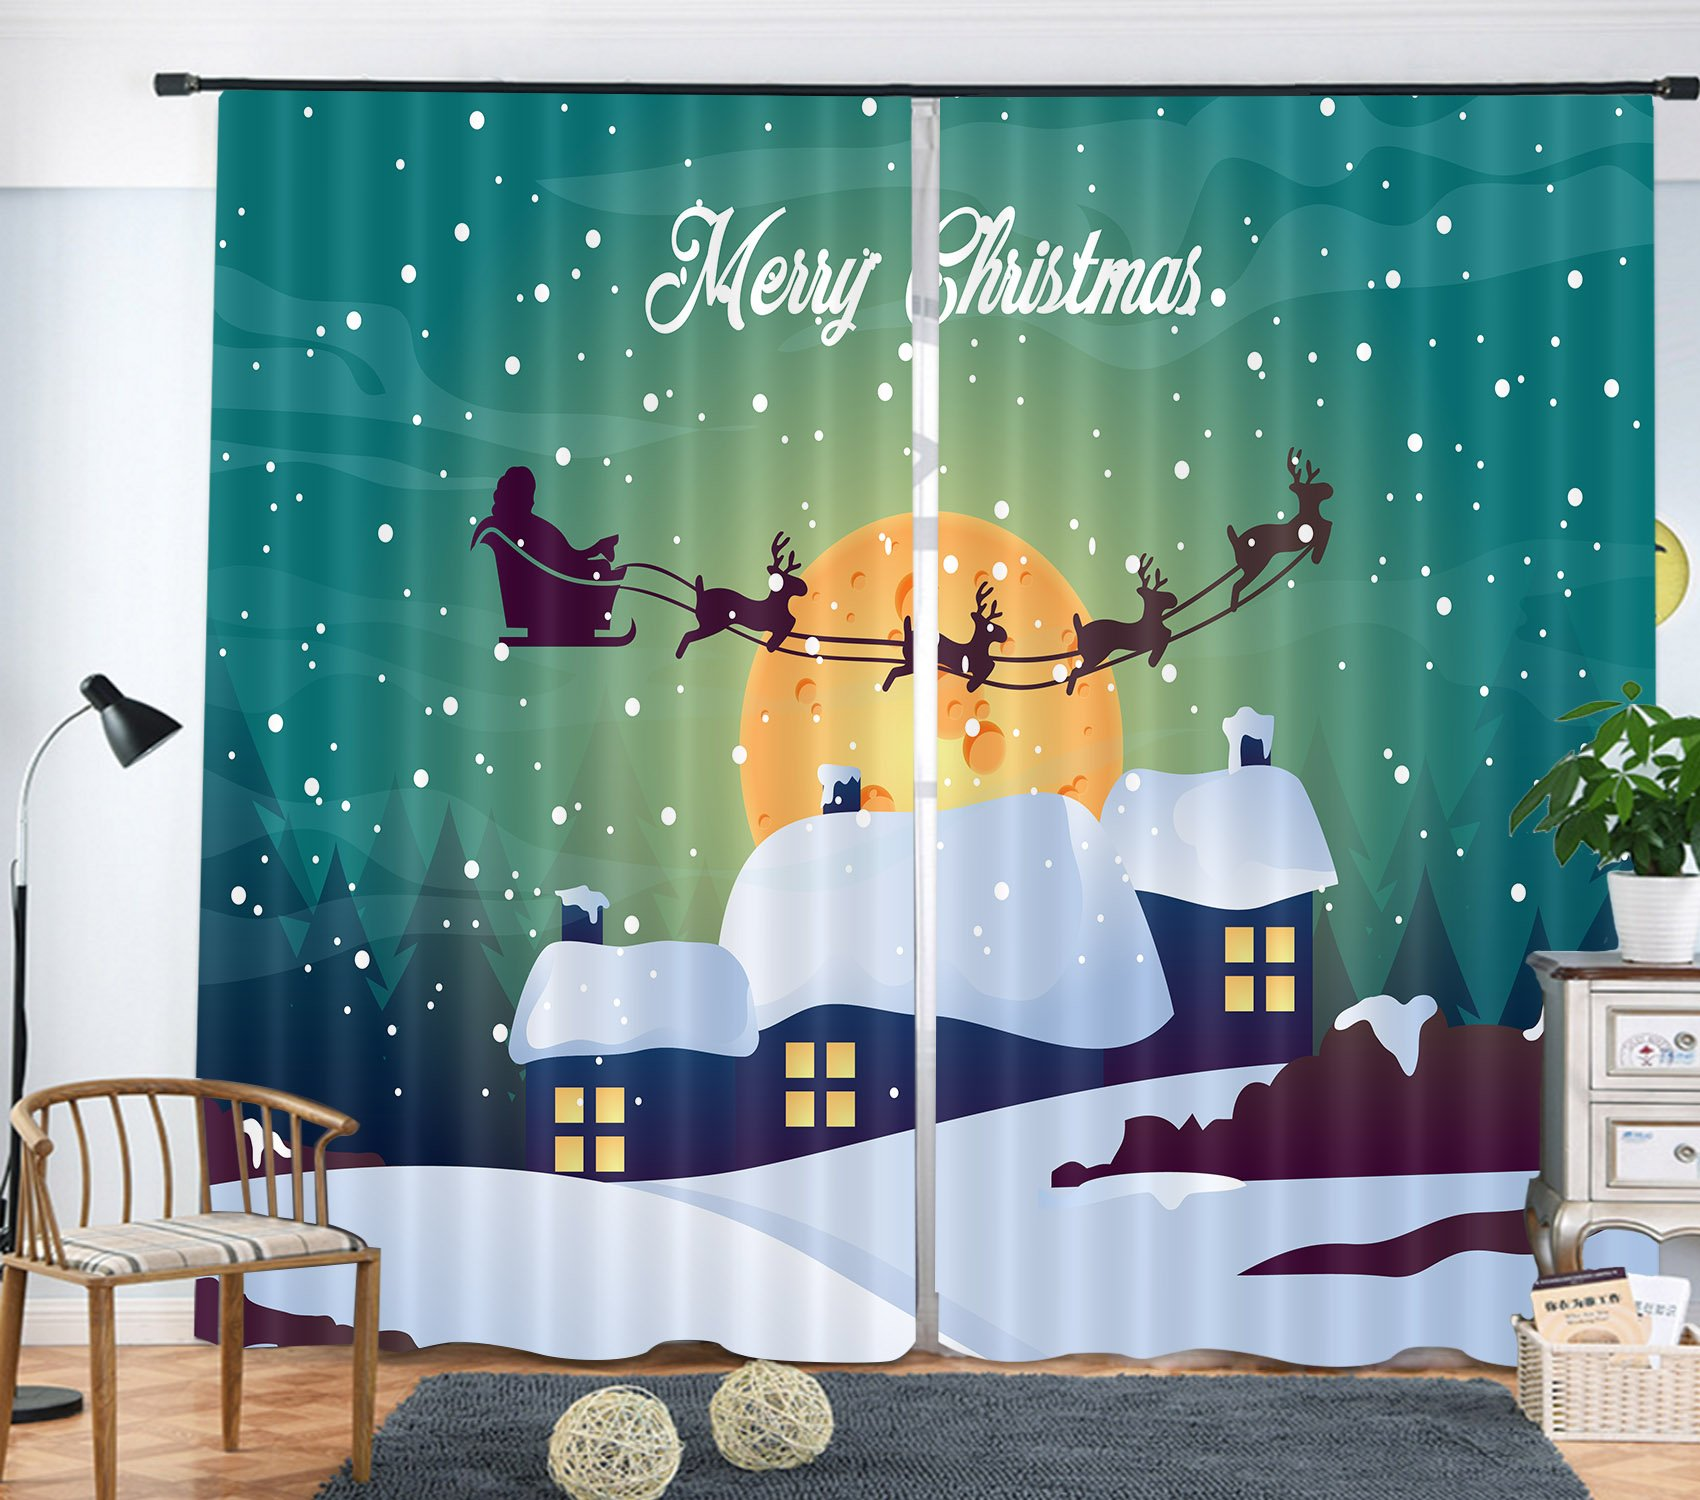 LB Holiday Decor Curtains for Kids Bedroom, Santa Claus and Reindeer in Christmas Night Snow, Decoration Drapes for Living Room, 80x95 Inches (2 Panels Size) , Green White Black